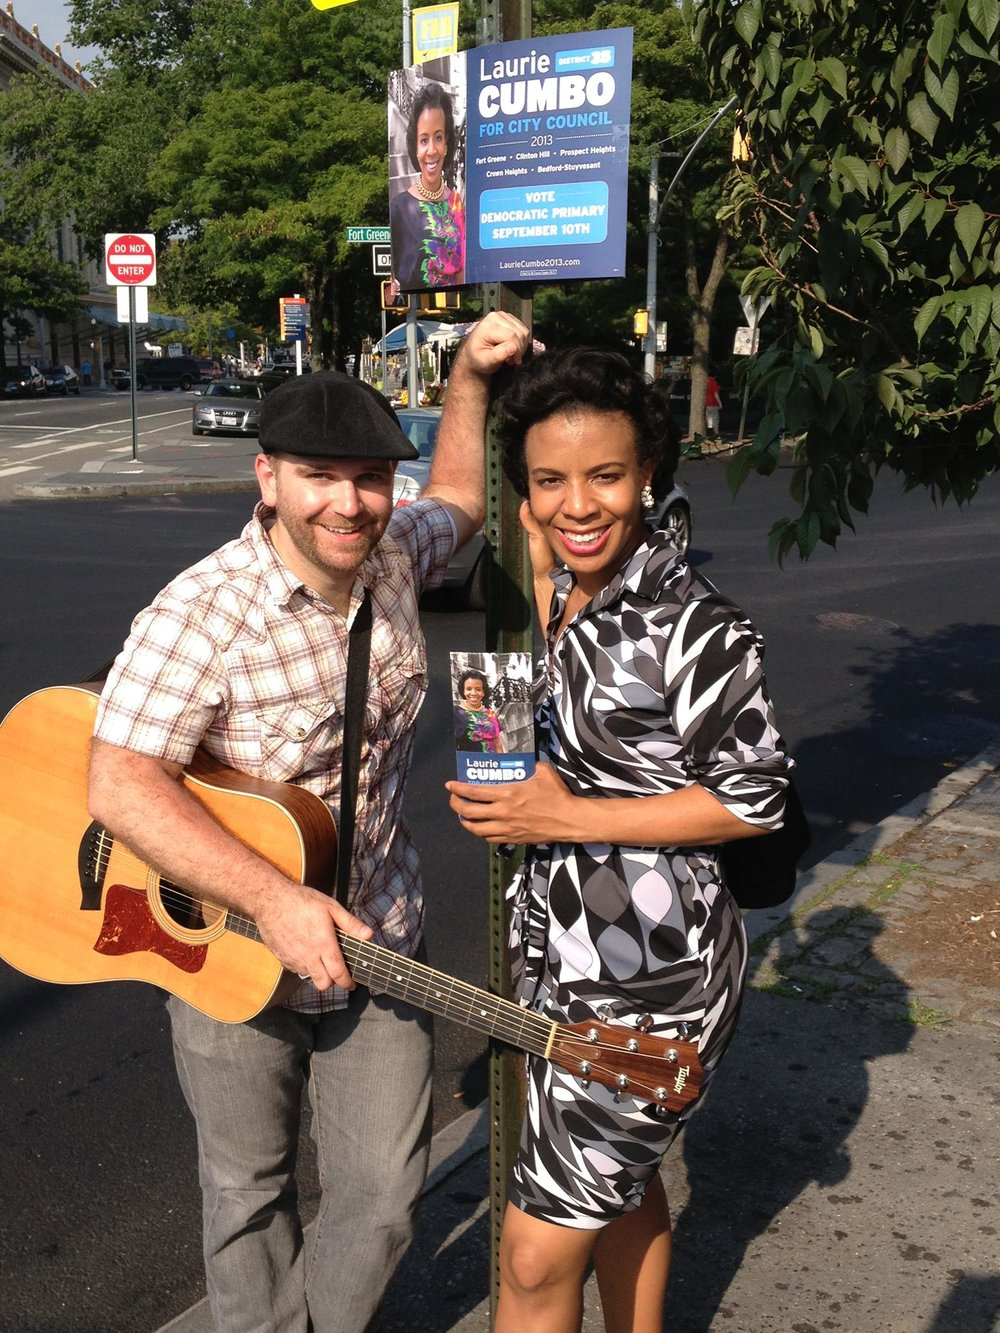 LIT District Leader Robby Gonyo campaigning with now-Councilwoman Laurie Cumbo during the 2013 Citywide elections.